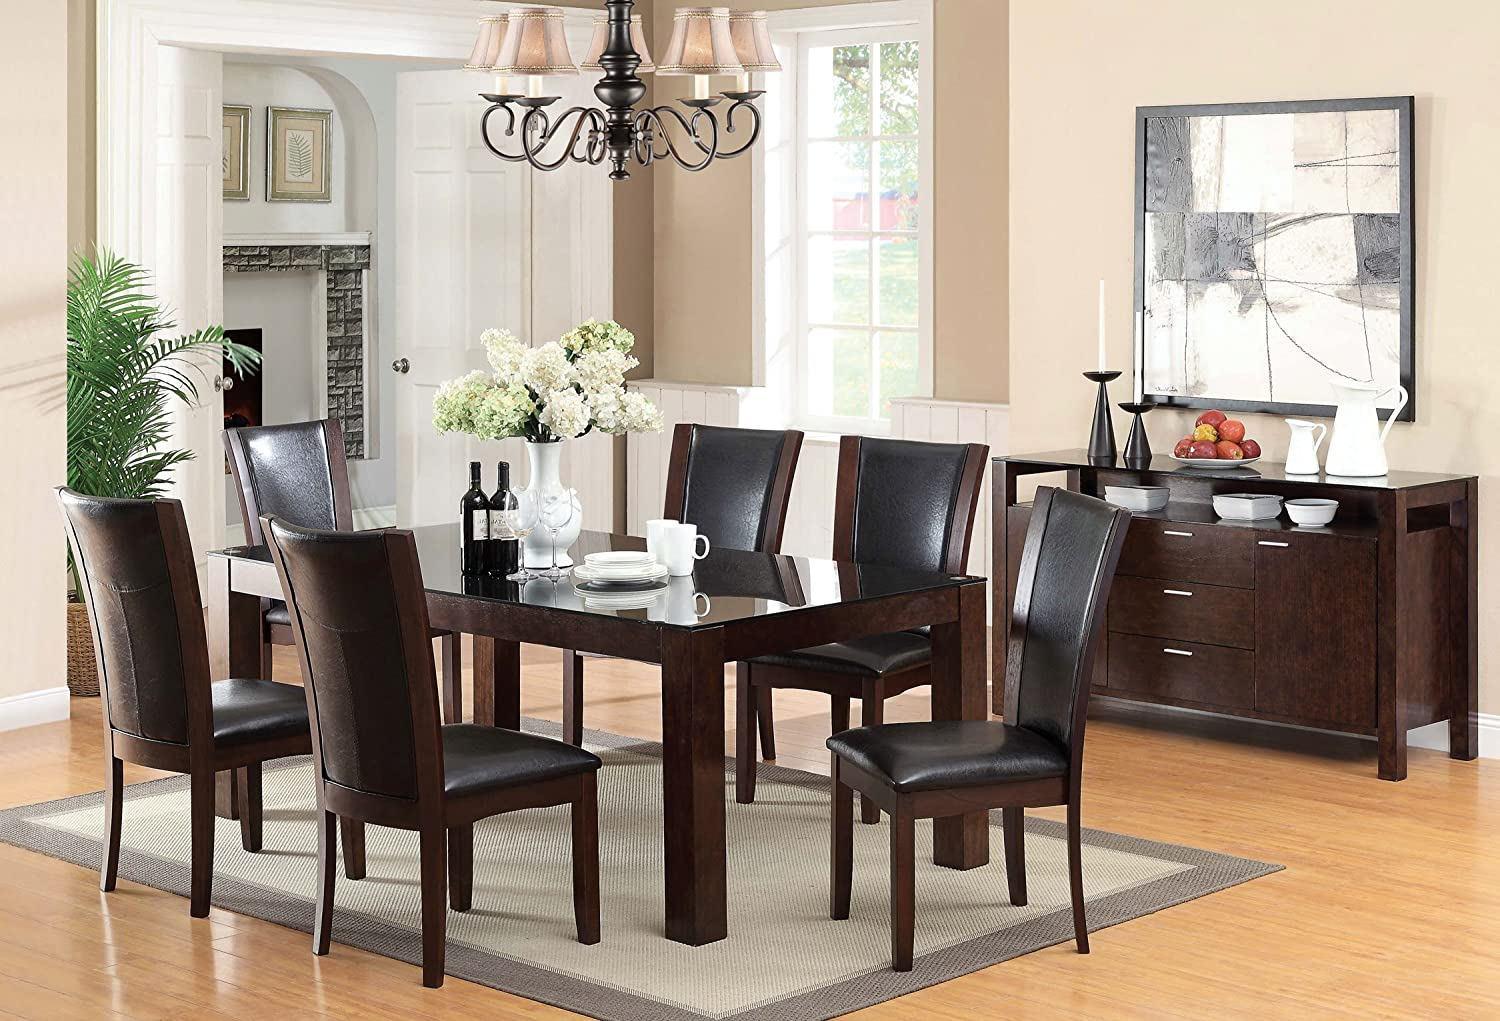 Furniture of America Renolds 7-Piece Dining Table Set with 10mm Black Tempered Glass Top - Dark Cherry Finish